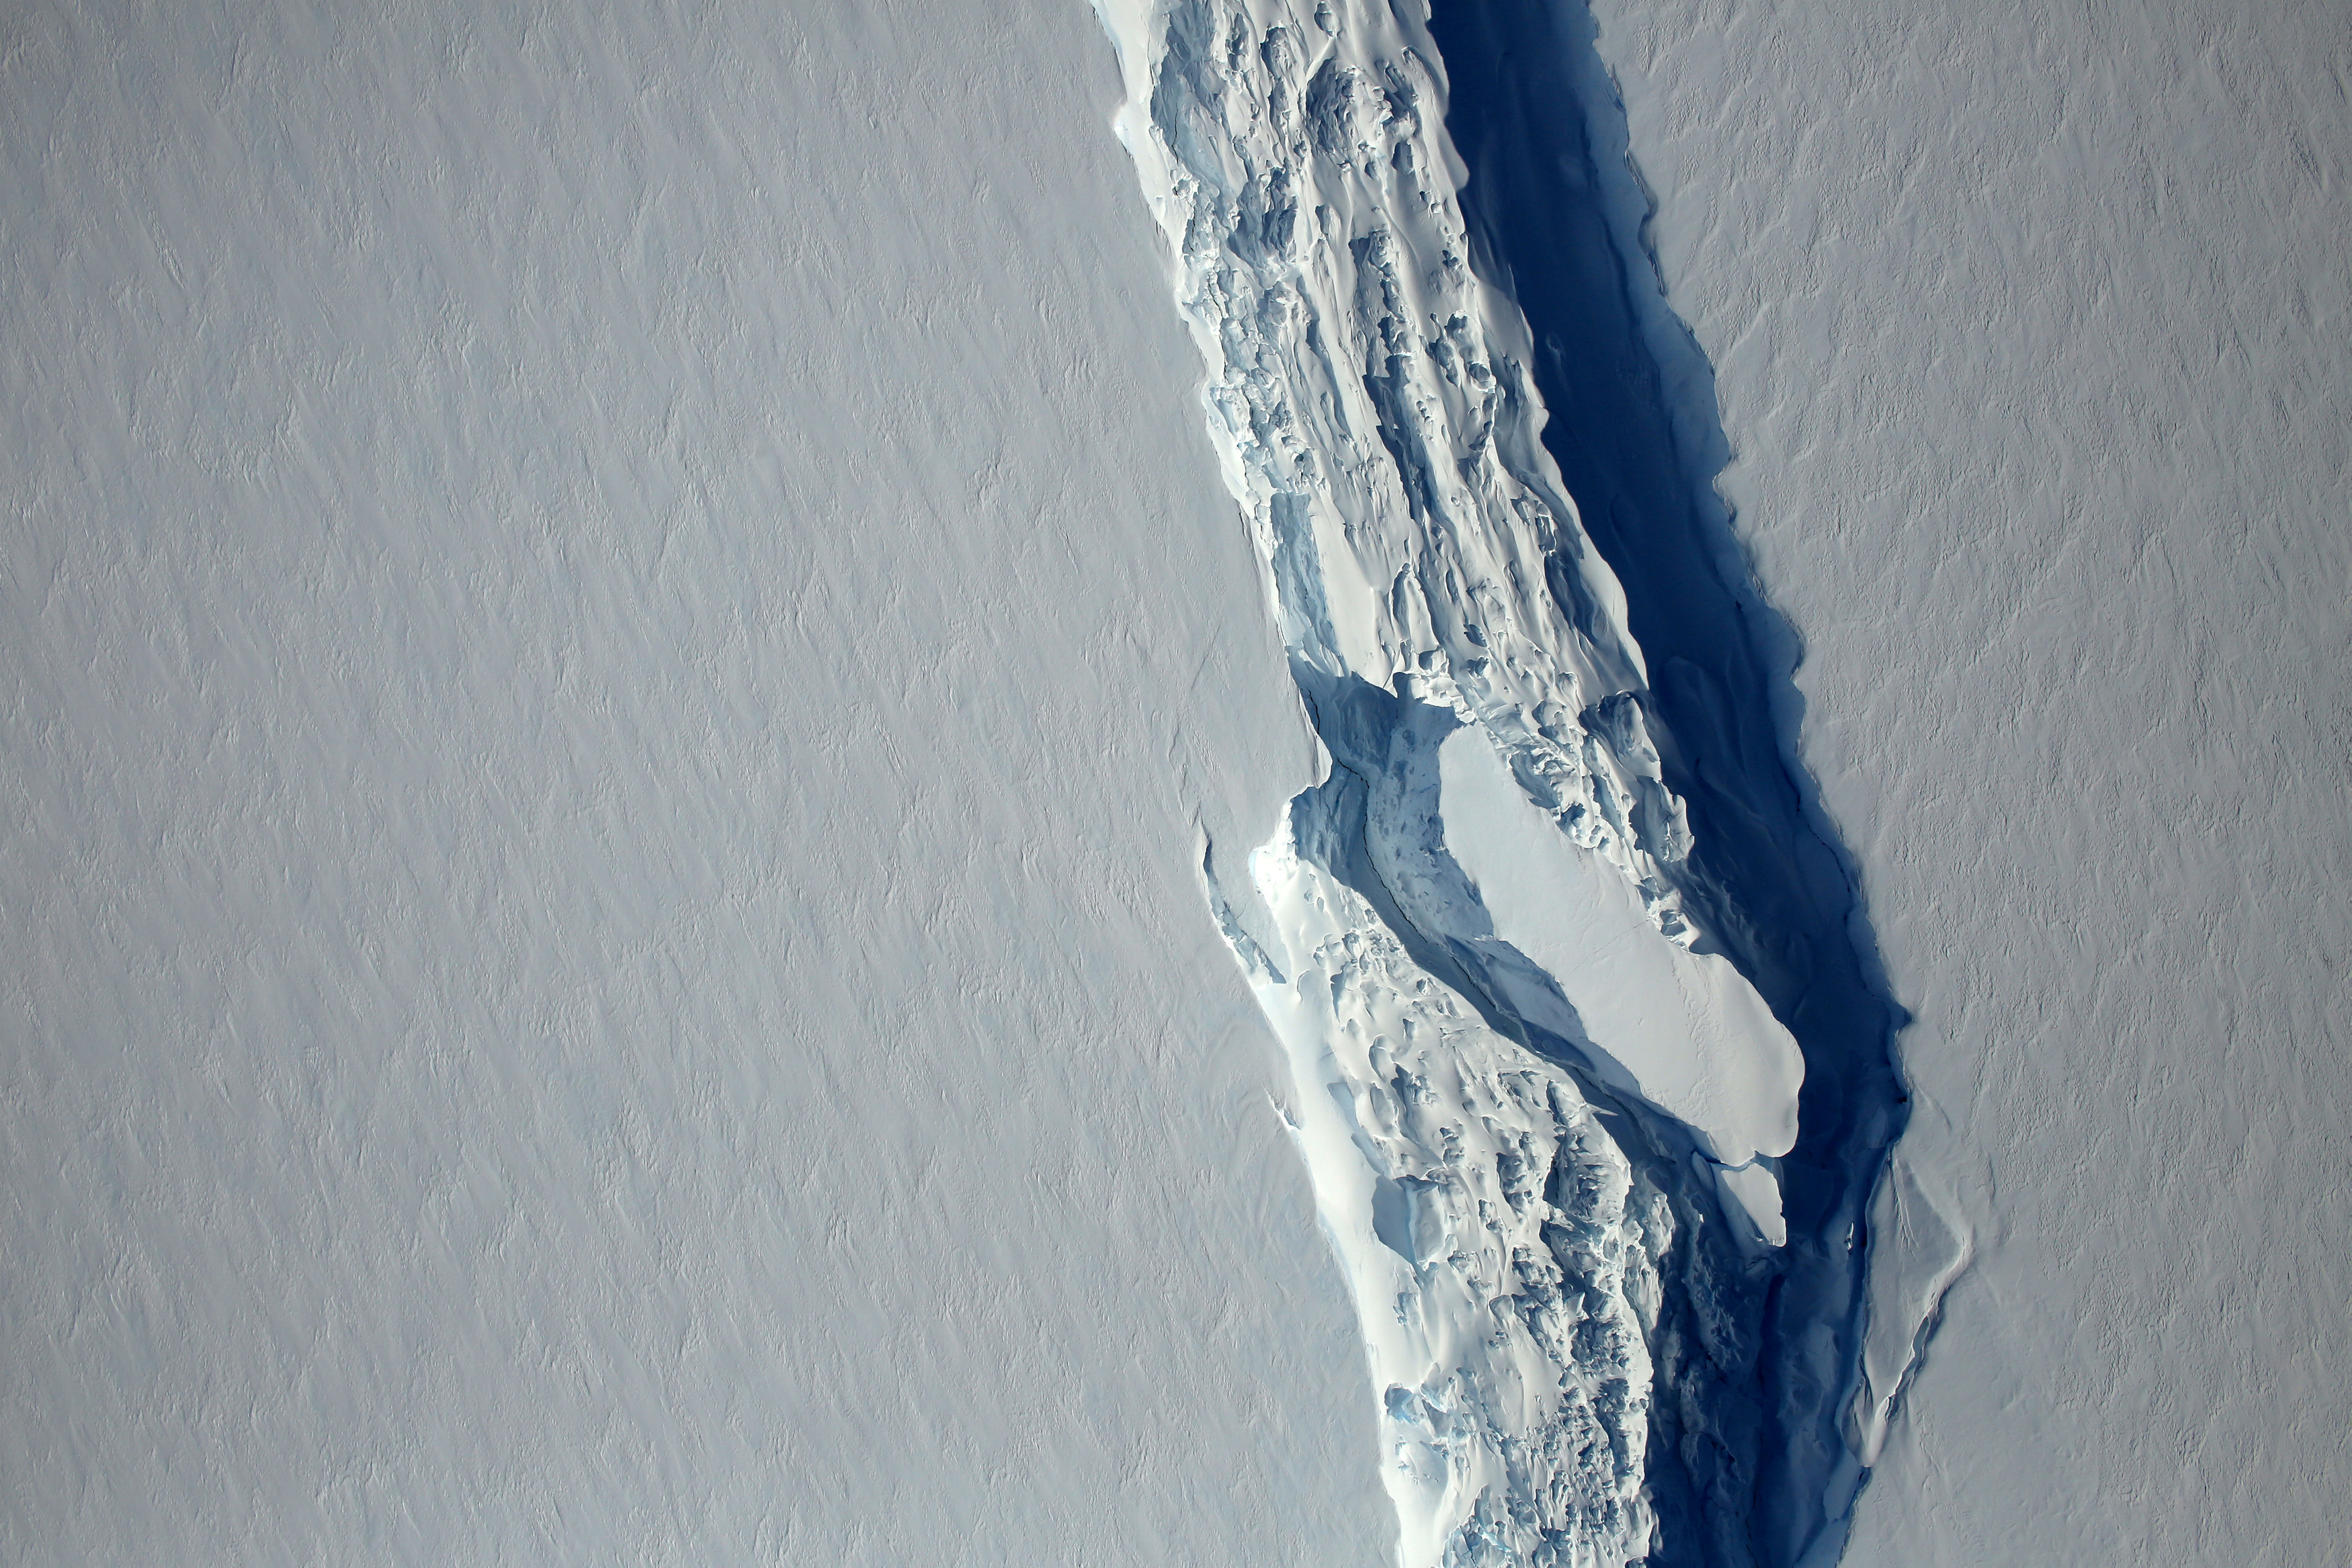 FILE PHOTO: An aerial view of the rift in the Larsen C seen in an image from the Digital Mapping System over the Antarctica Peninsula, Antarctica, on November 10, 2016. NASA's Goddard Space Flight Center/Handout via REUTERS/File Photo ATTENTION EDITORS - THIS IMAGE HAS BEEN SUPPLIED BY A THIRD PARTY